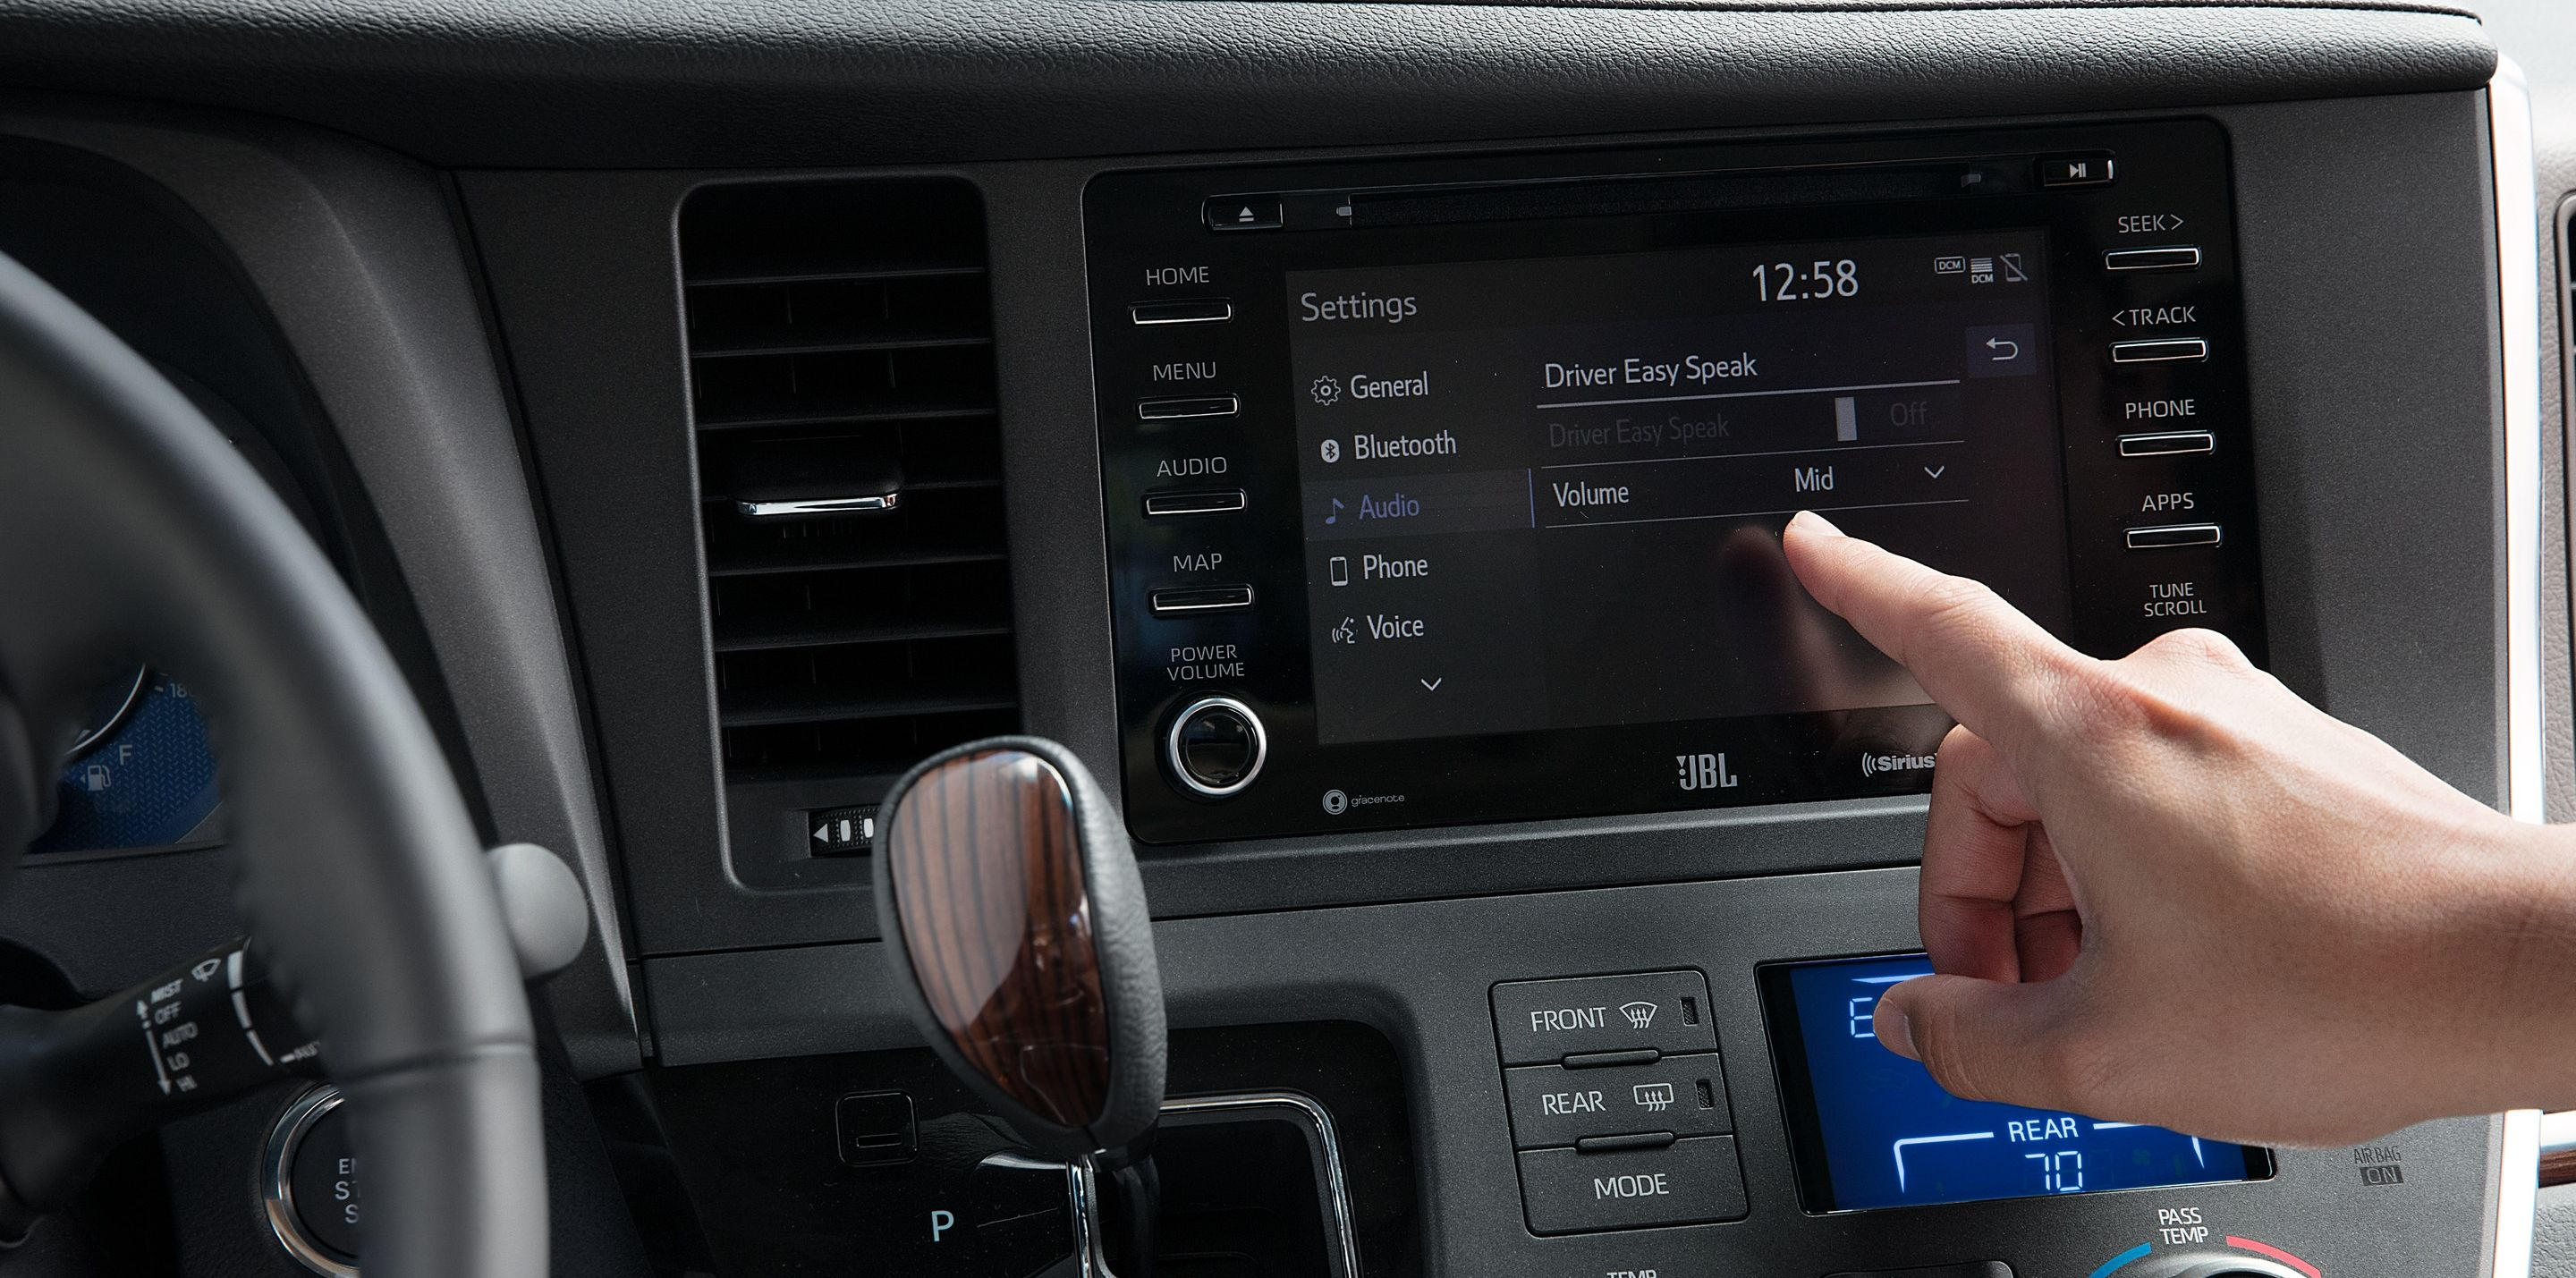 Touchscreen Display in the 2019 Toyota Sienna